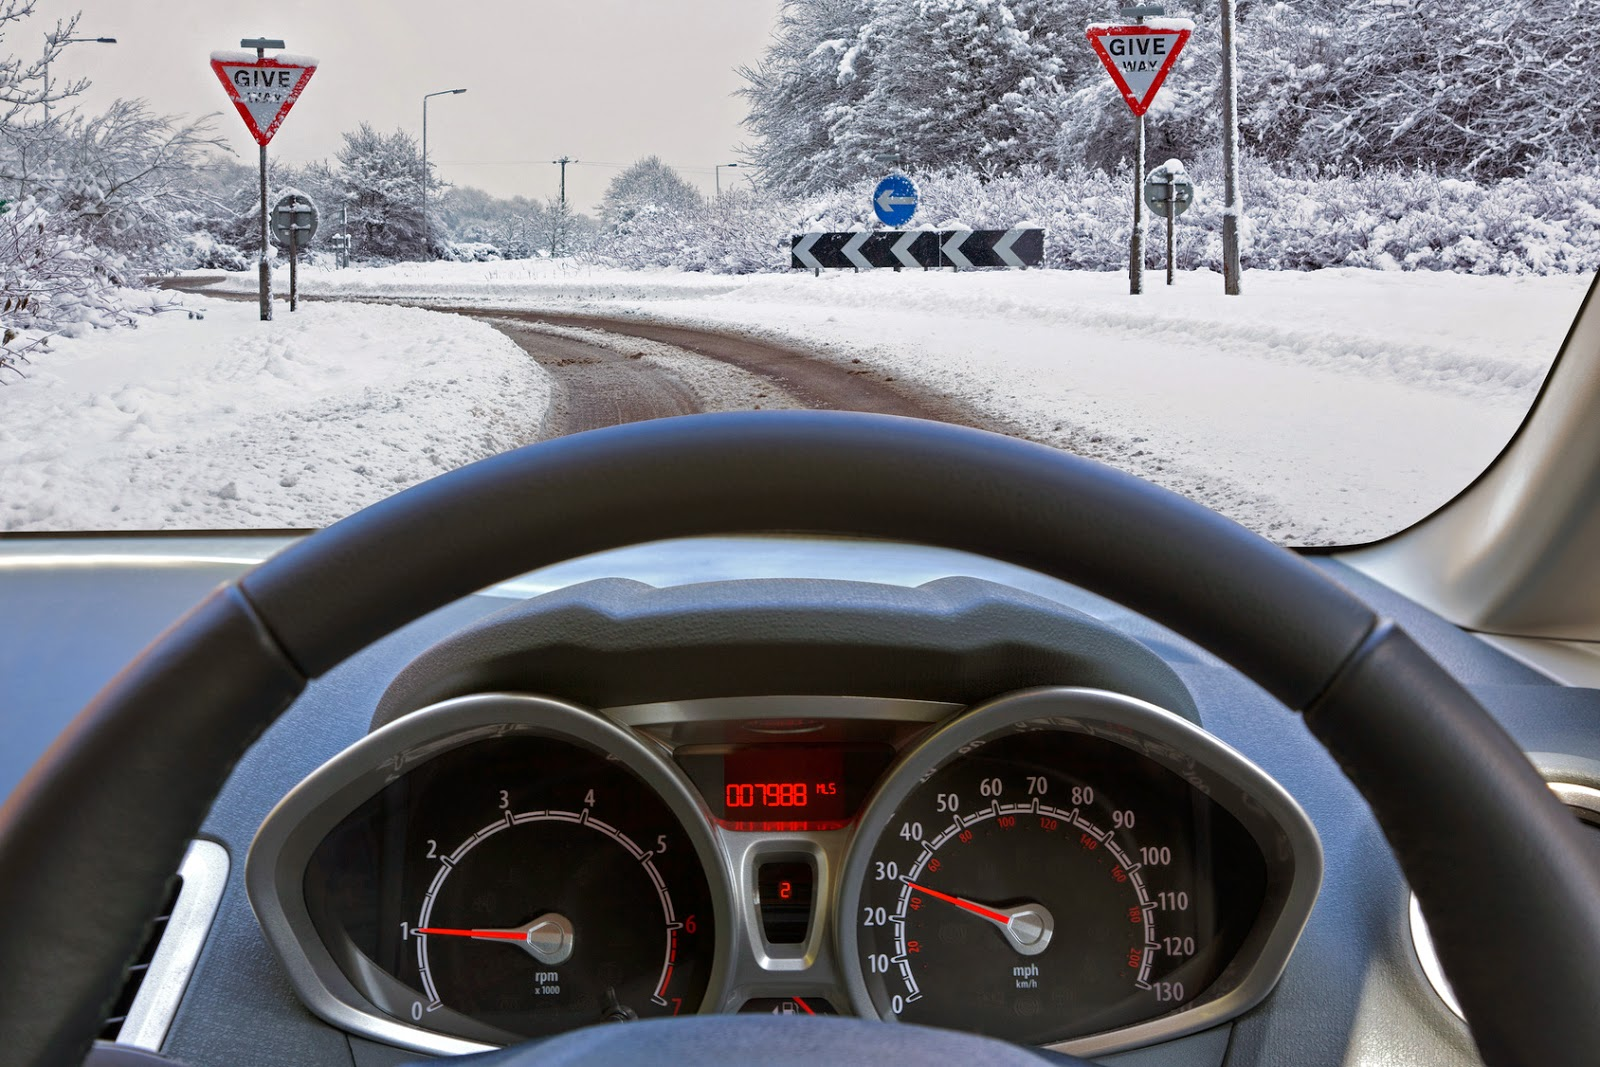 Driving Tips for a Safe Winter